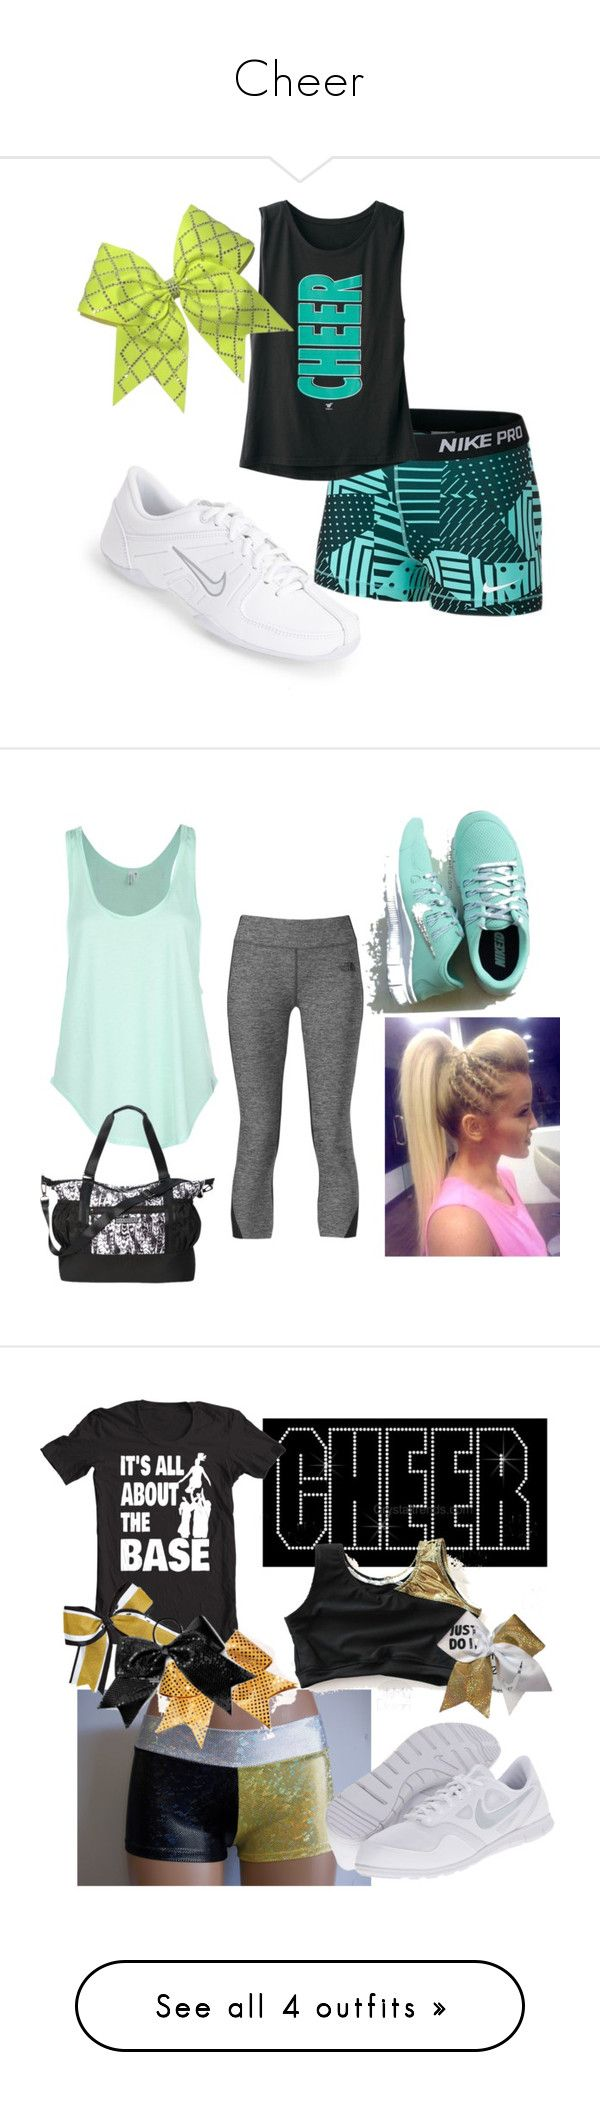 """""""Cheer"""" by kirstengraceanne ❤ liked on Polyvore featuring NIKE, Rip Curl, The North Face, Victoria's Secret, Chassè and adidas"""